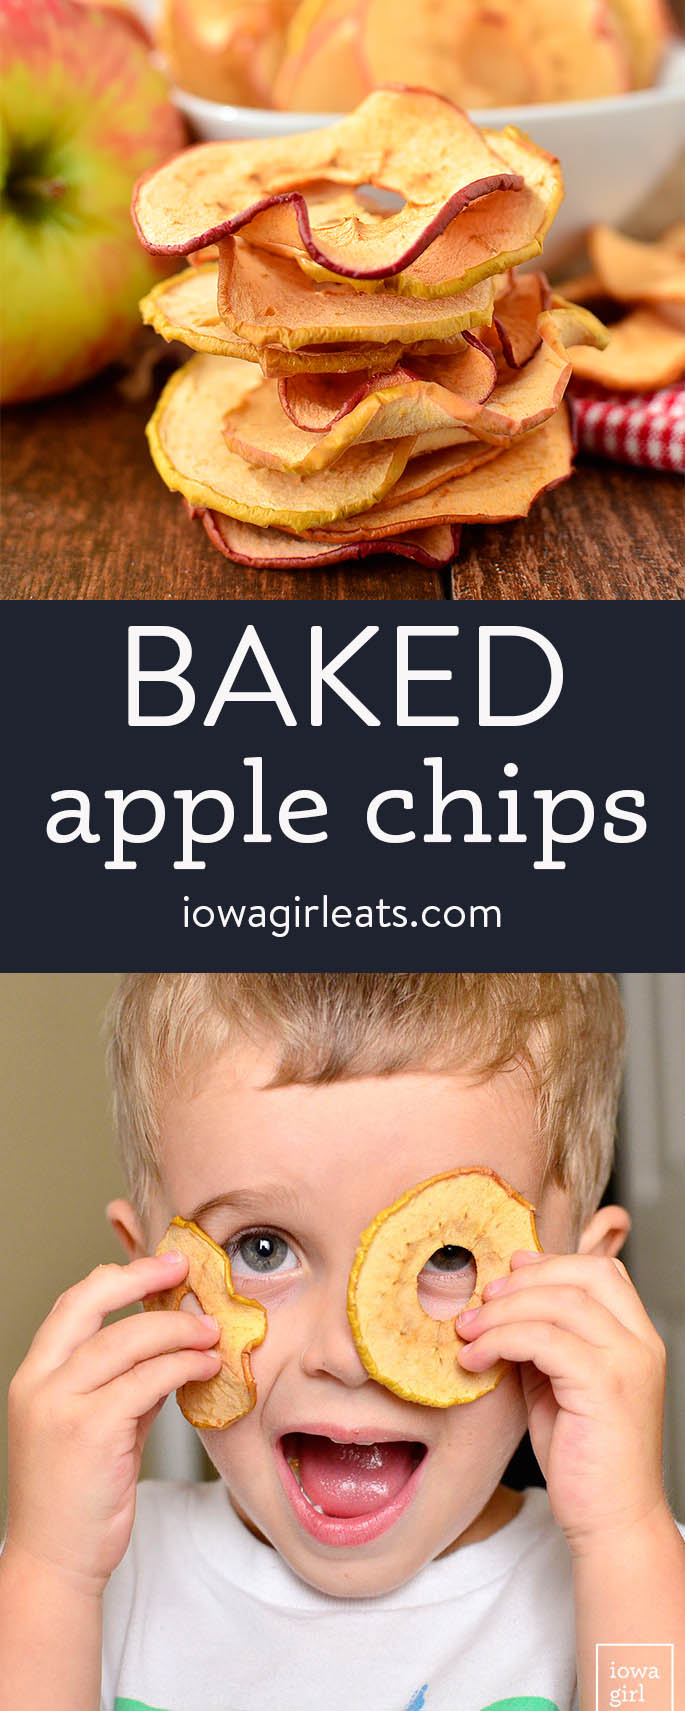 photo collage of baked apple chips